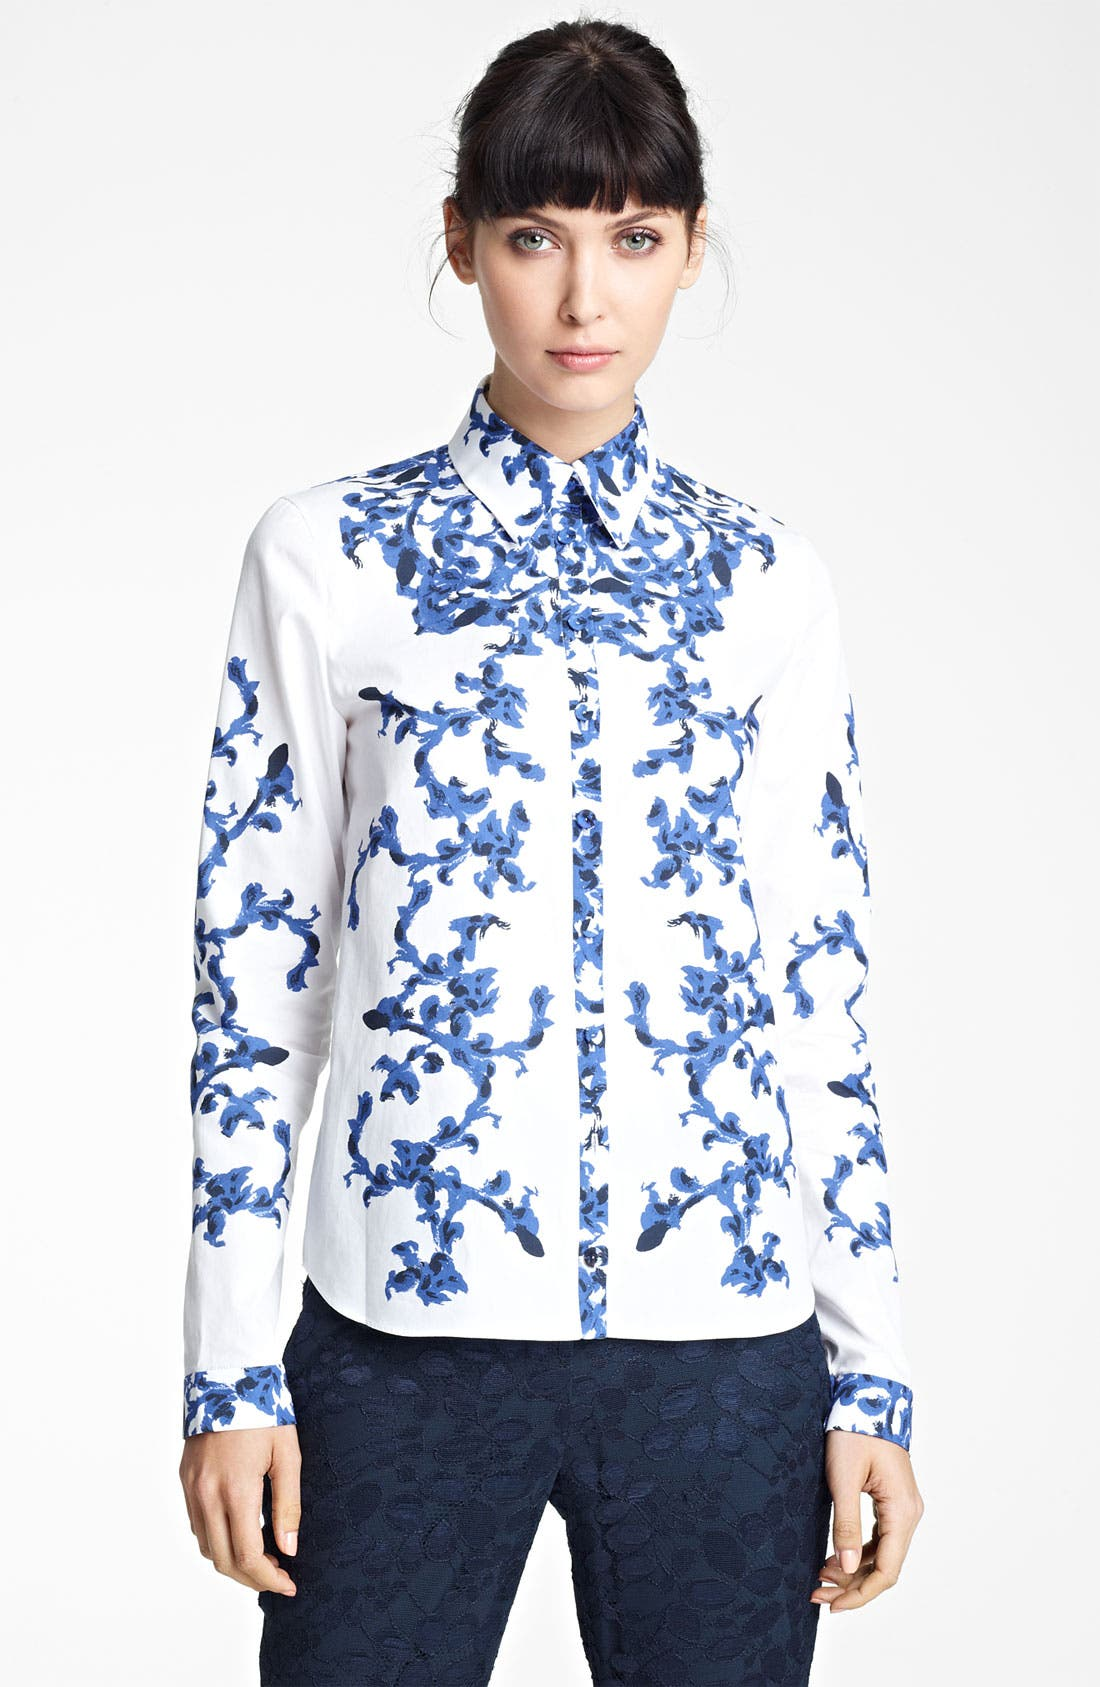 Alternate Image 1 Selected - Erdem Print Woven Shirt